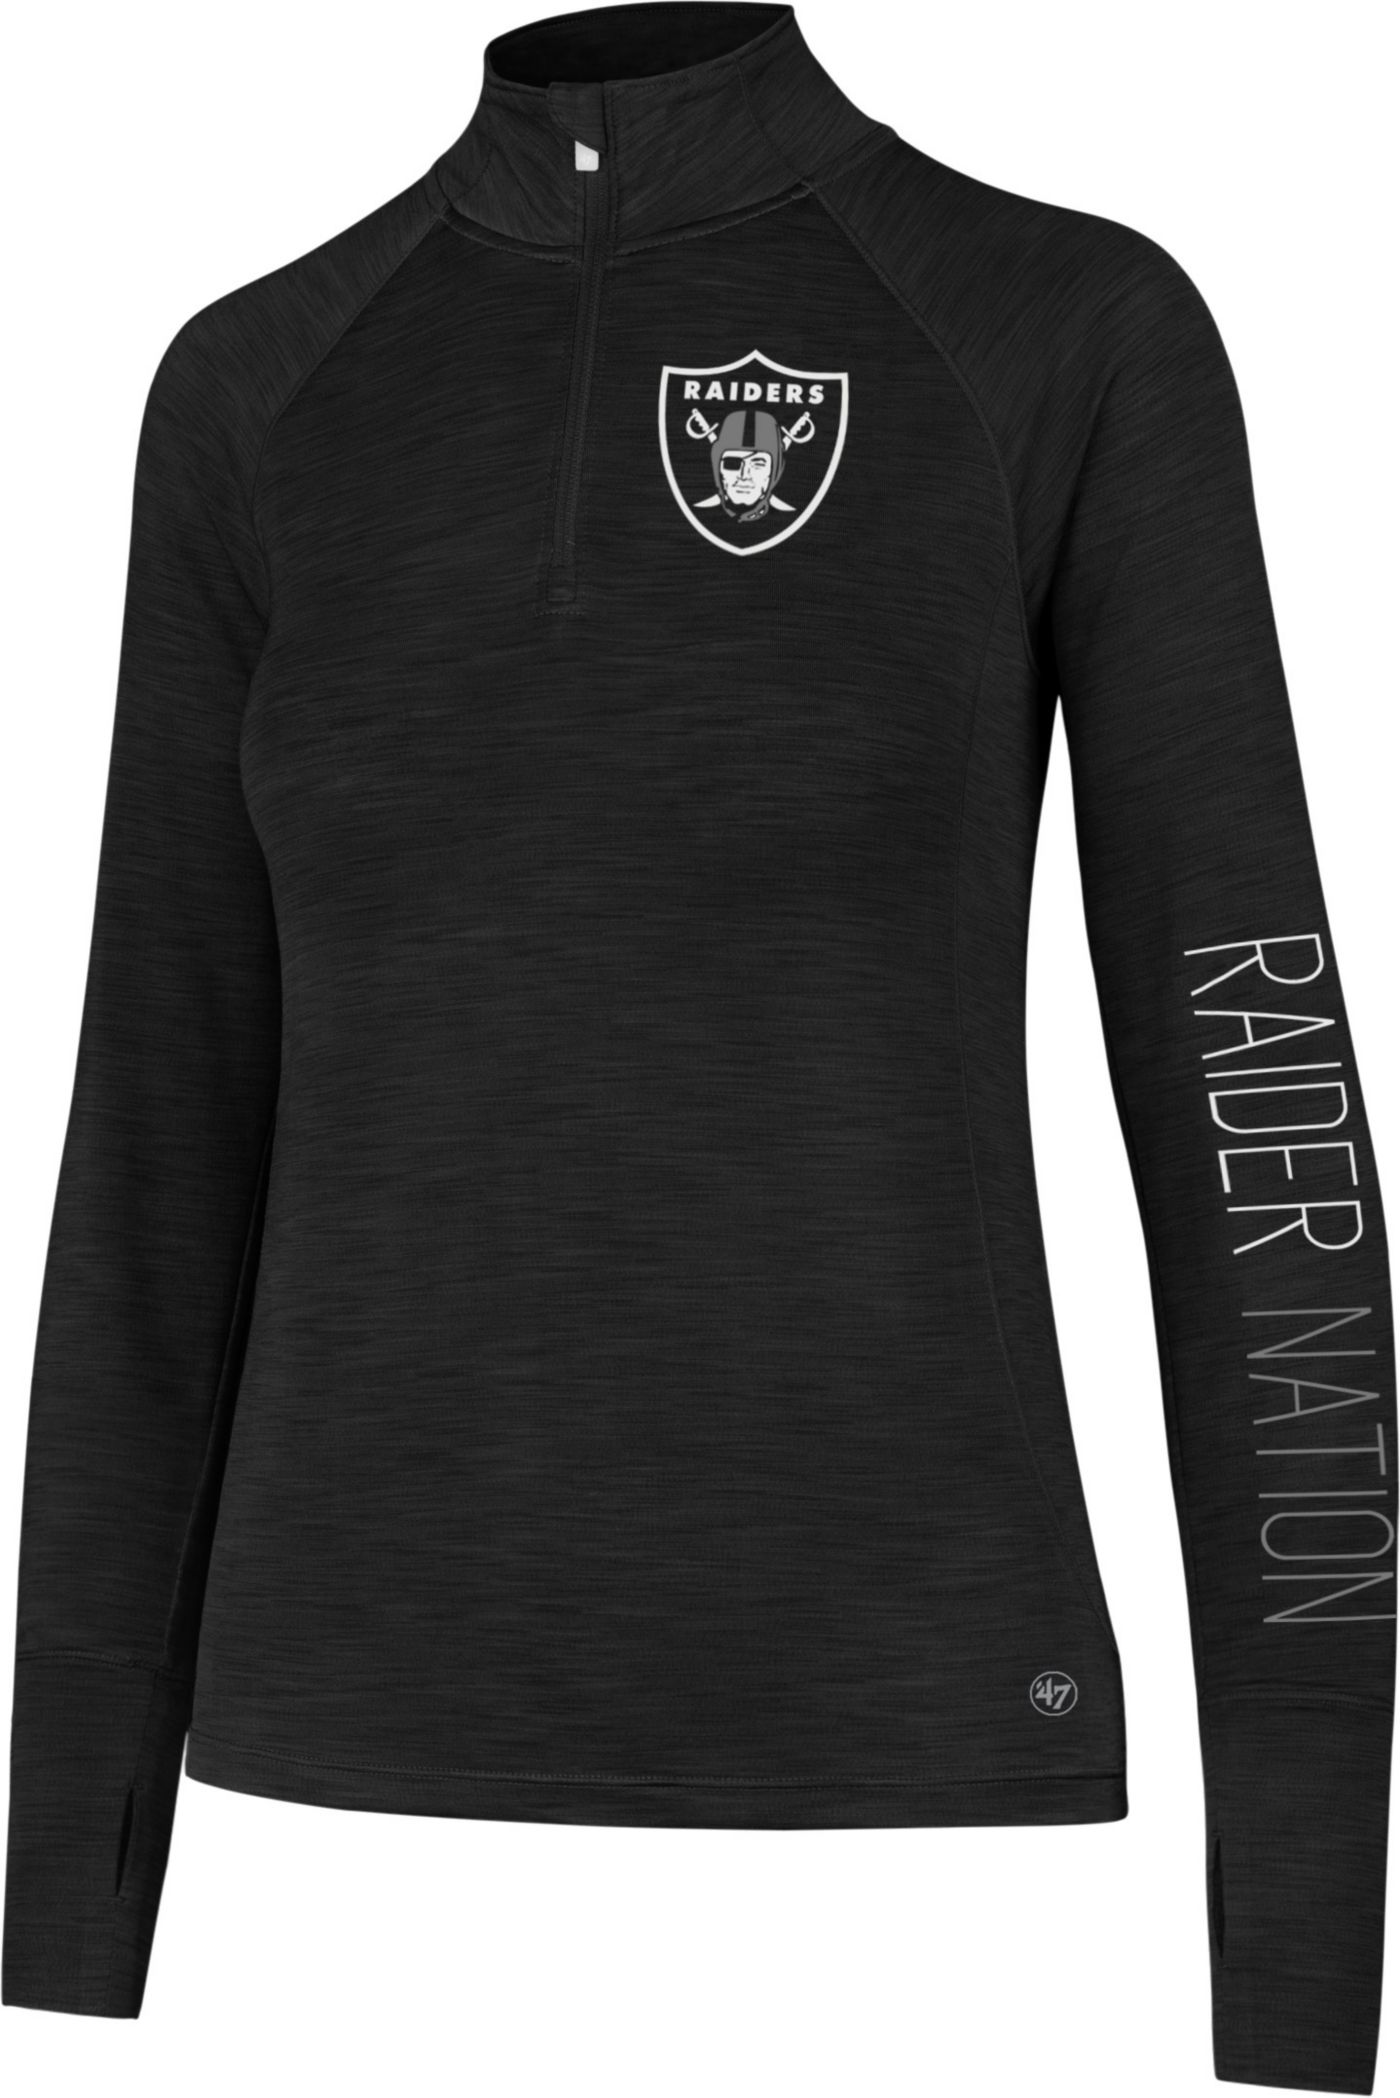 '47 Women's Oakland Raiders Shade Black Quarter-Zip Pullover